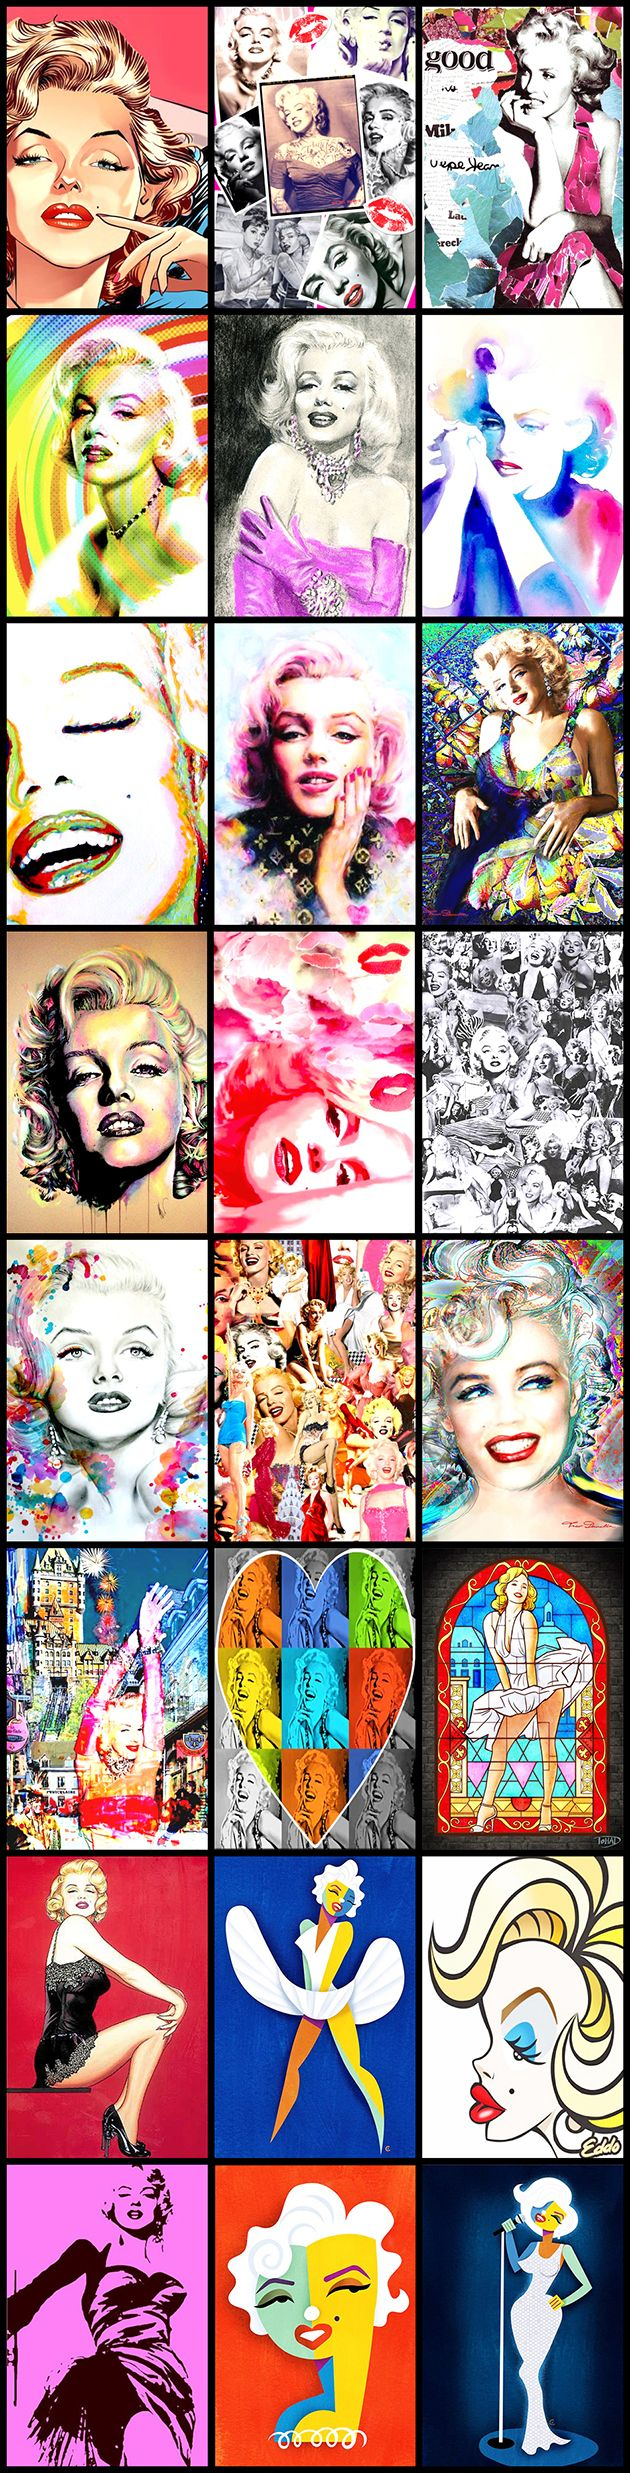 View Marilyn Monroe @ our Pinterest Gallery